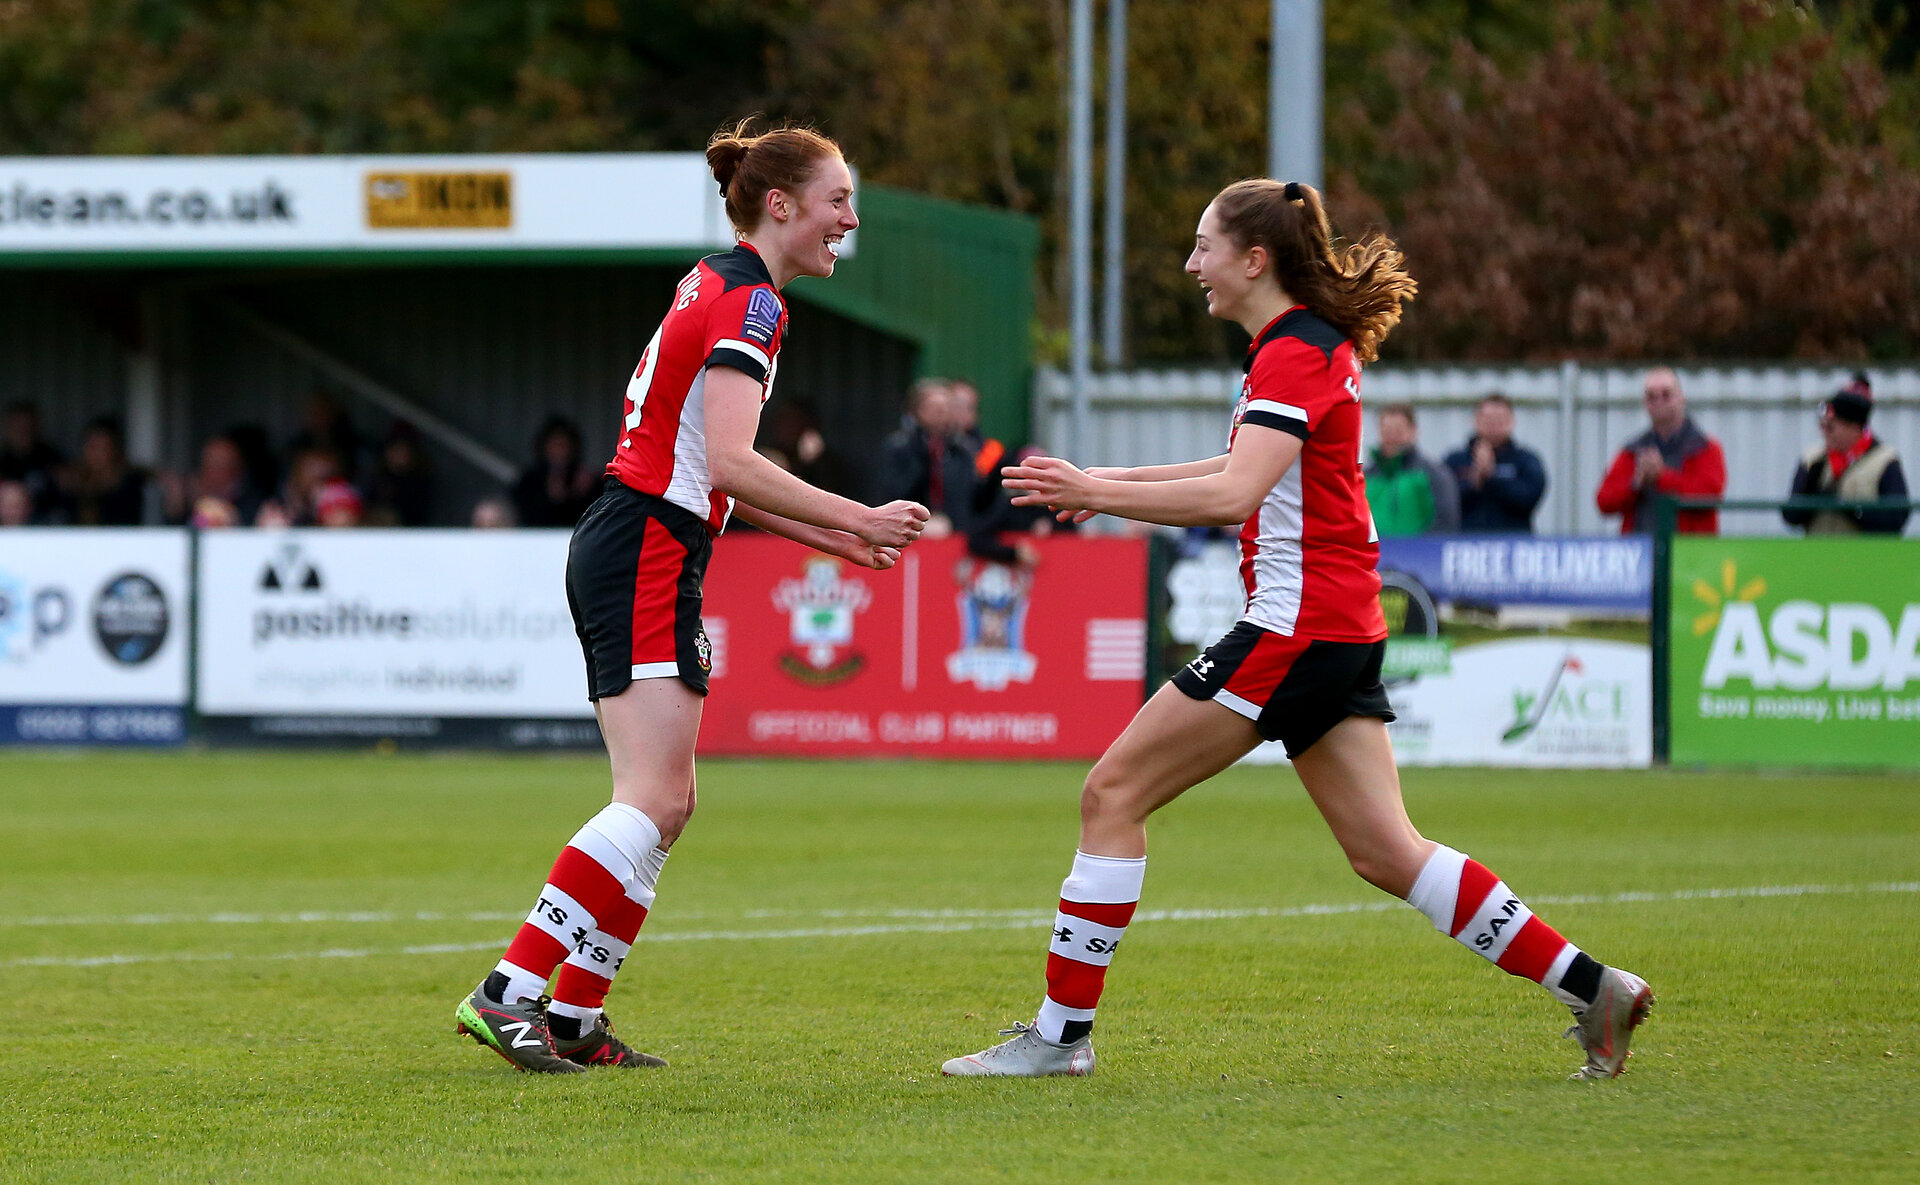 SOUTHAMPTON, ENGLAND - NOVEMBER 17: Rachel Panting(L) and Ella Morris celebrate during Womens Hampshire Cup round 2 match between Southampton FC Women and AFC Bournemouth Women, at the Snows stadium AFC Totton, on November 17, 2019 in Southampton, England. (Photo by Matt Watson/Southampton FC via Getty Images)